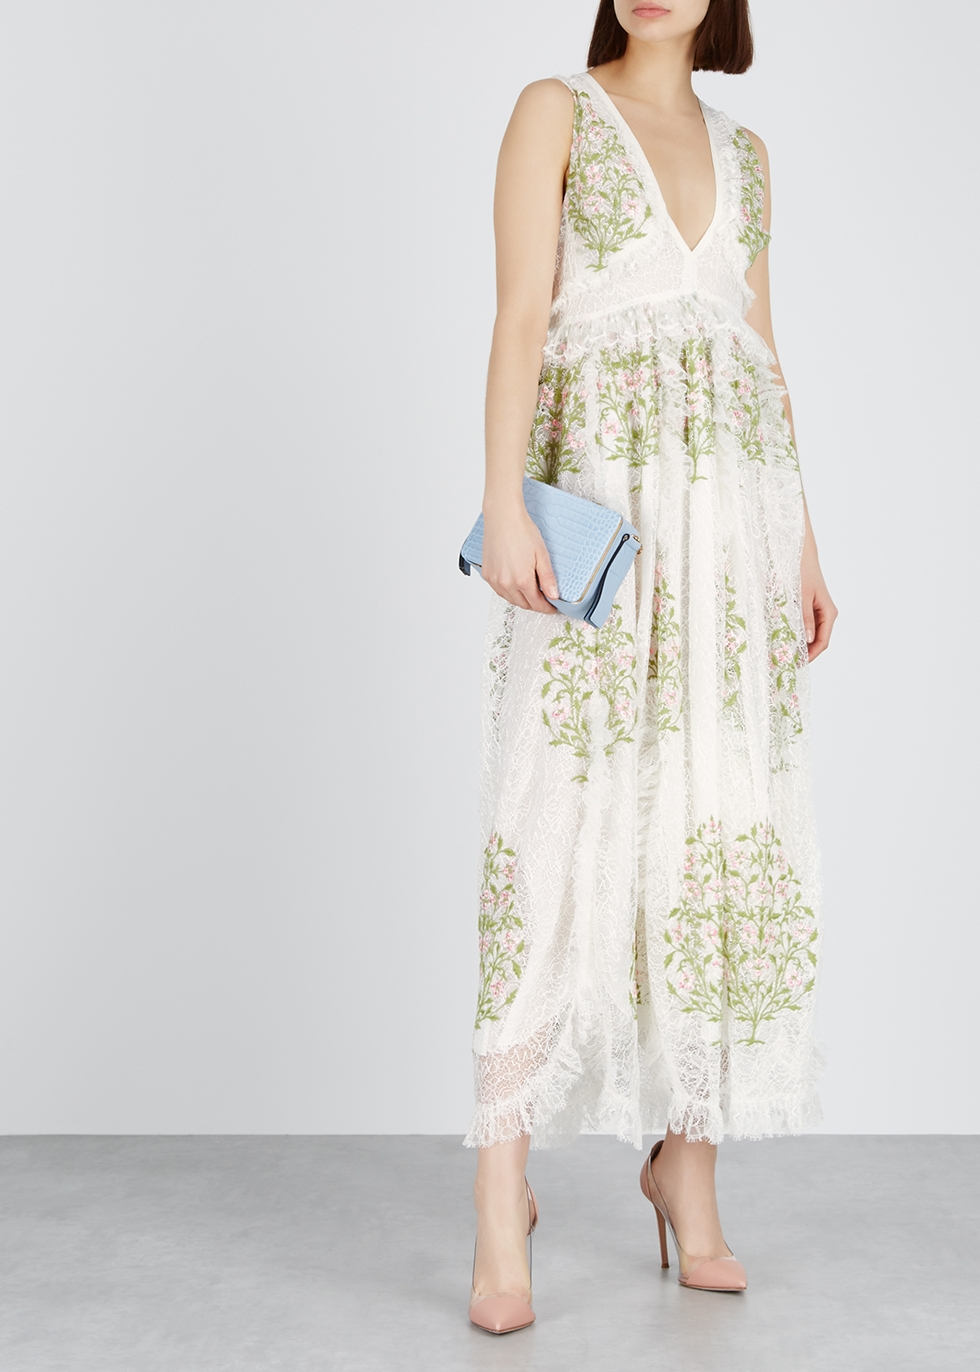 Floral-embroidered lace maxi dress - Giambattista Valli